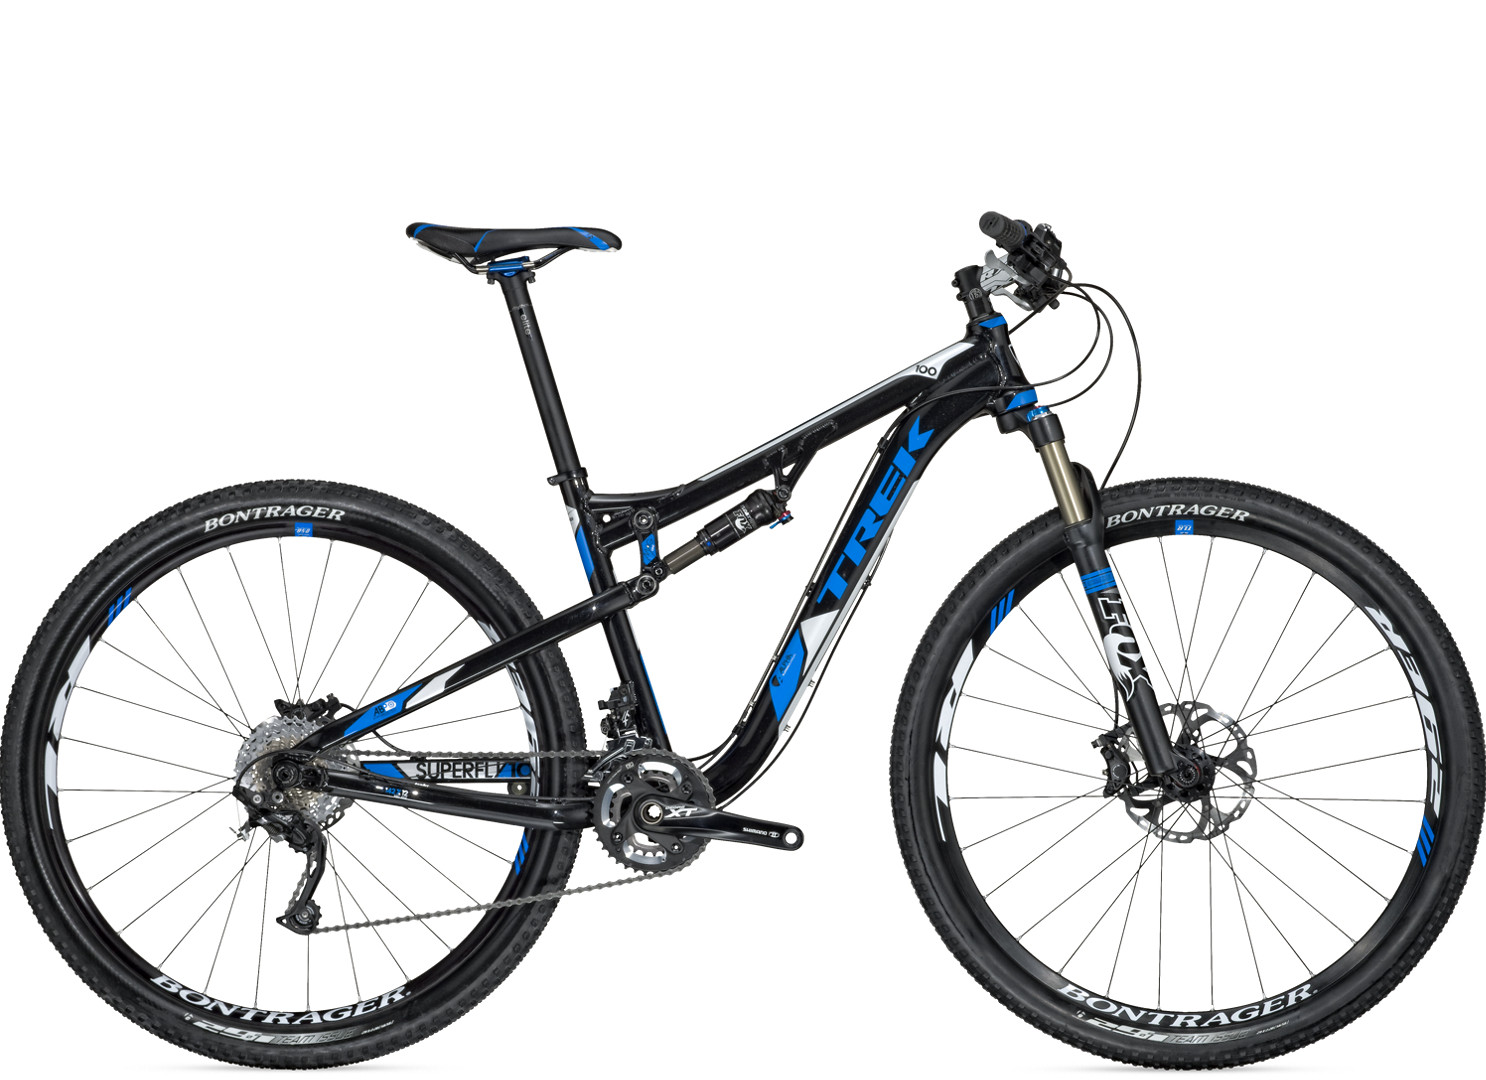 2012 Trek Superfly 100 AL Pro Bike 23375